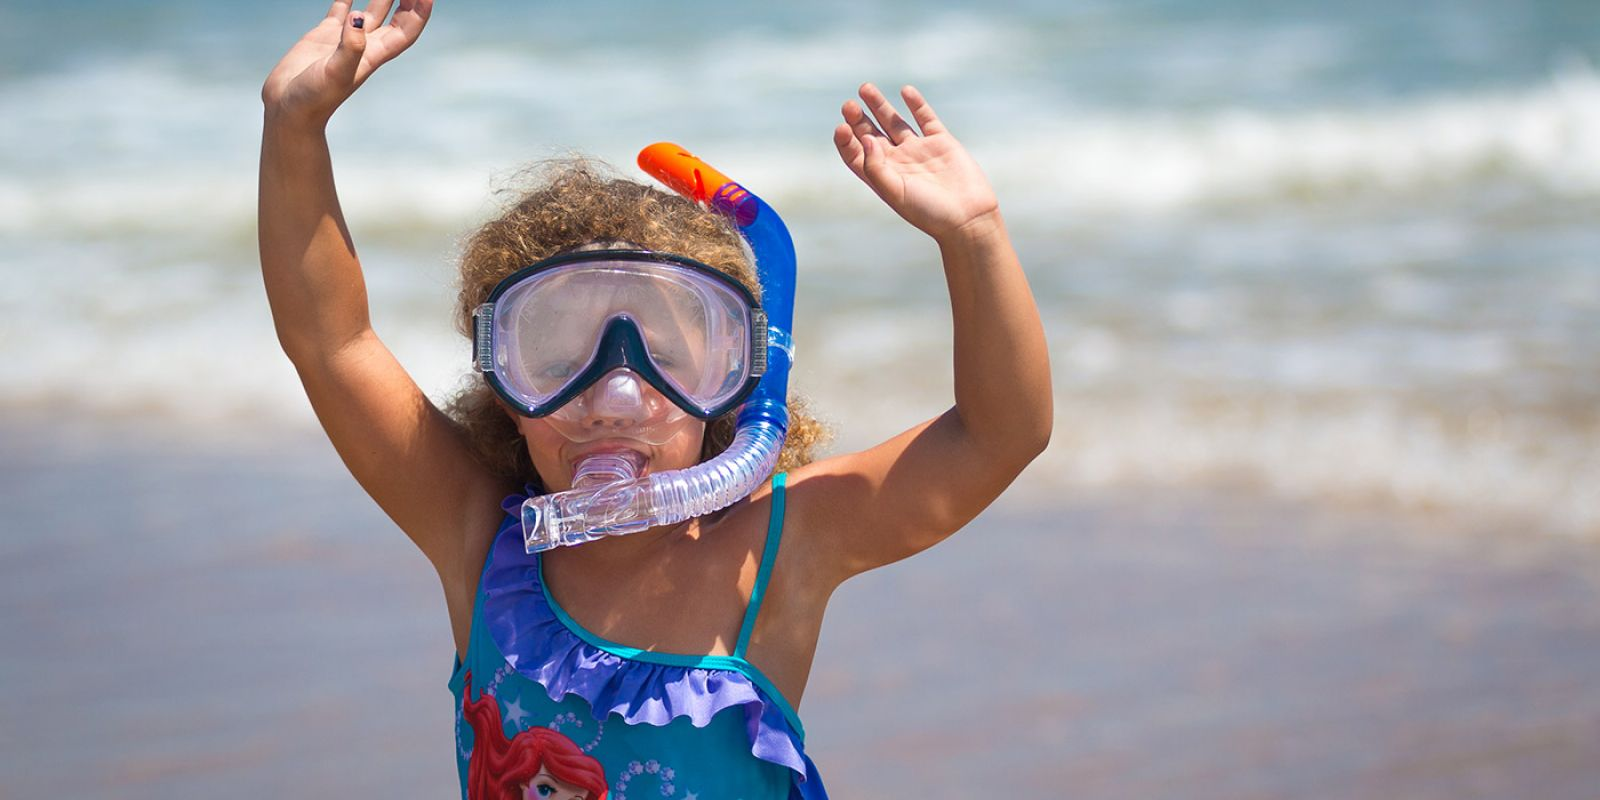 Snorkeling is fun for the whole family on Hatteras!